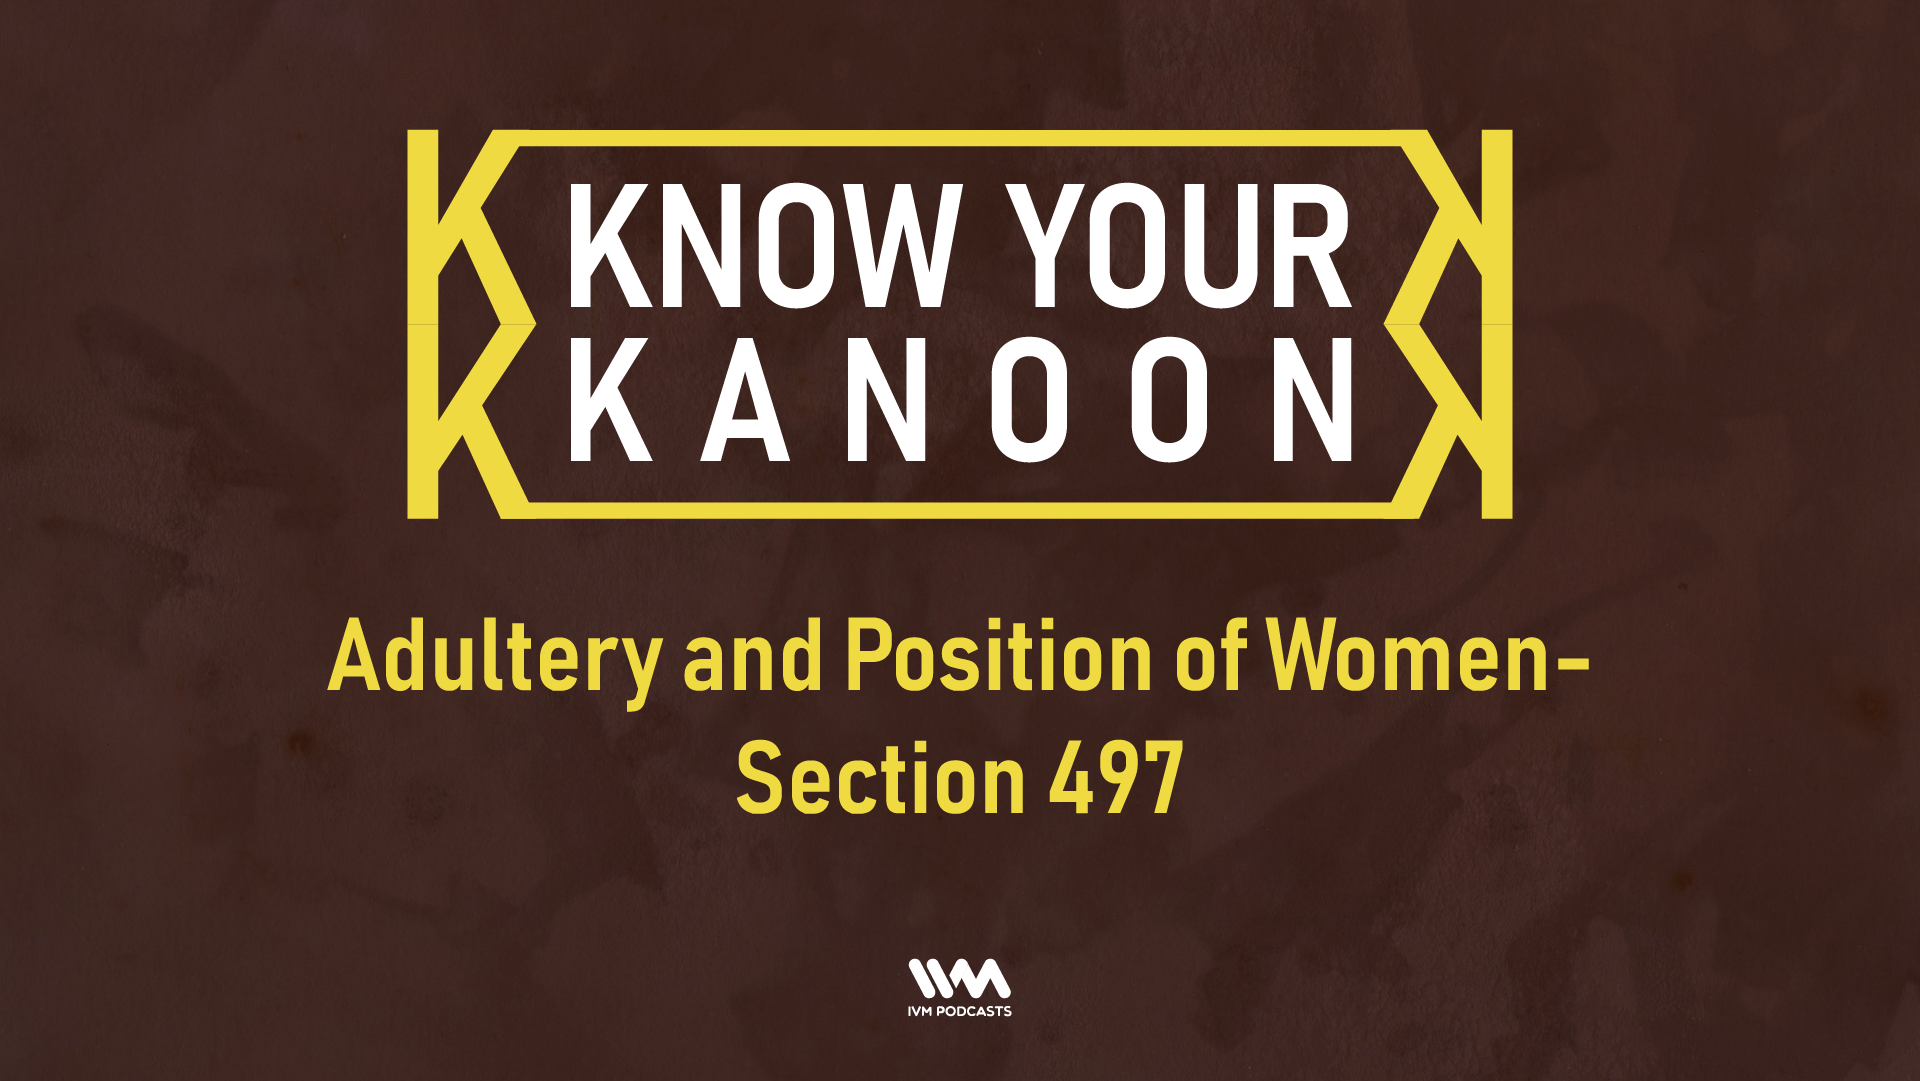 KnowYourKanoonEpisode07.png